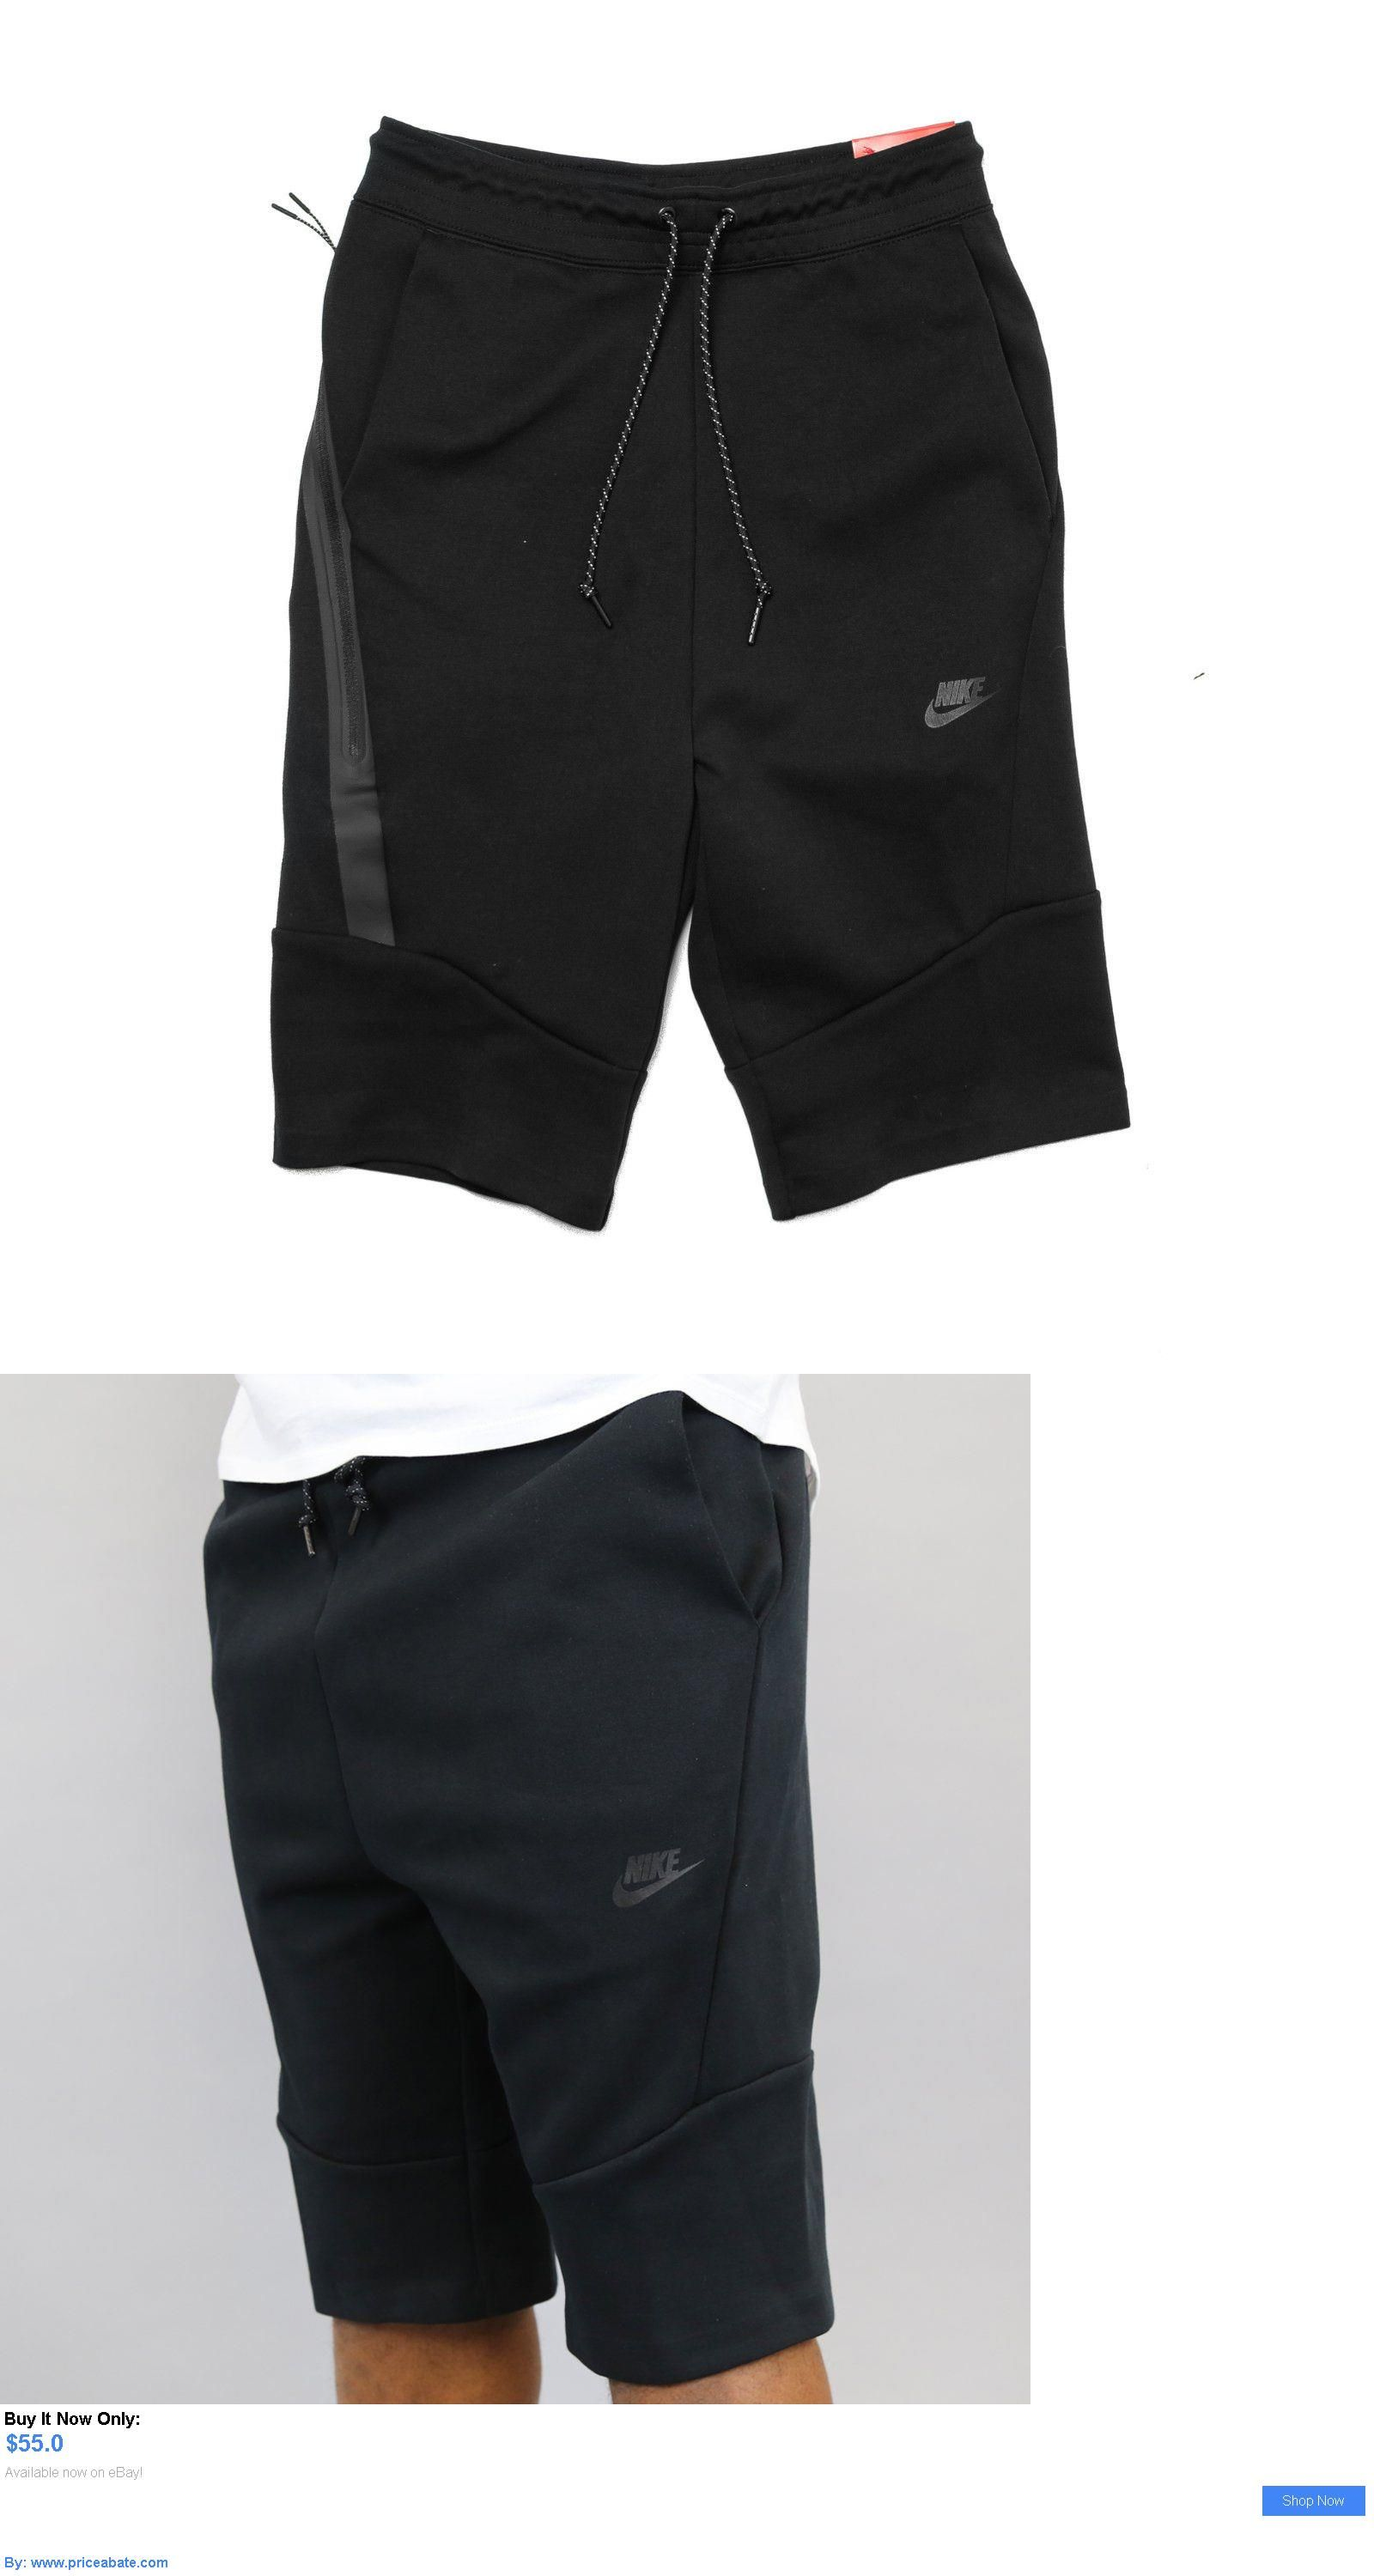 00275736d8 Men Athletics: Nike Tech Fleece Shorts 2.0 Black # 727357 010 Men Sz S - Xl  45% Off BUY IT NOW ONLY: $55.0 #priceabateMenAthletics OR #priceabate